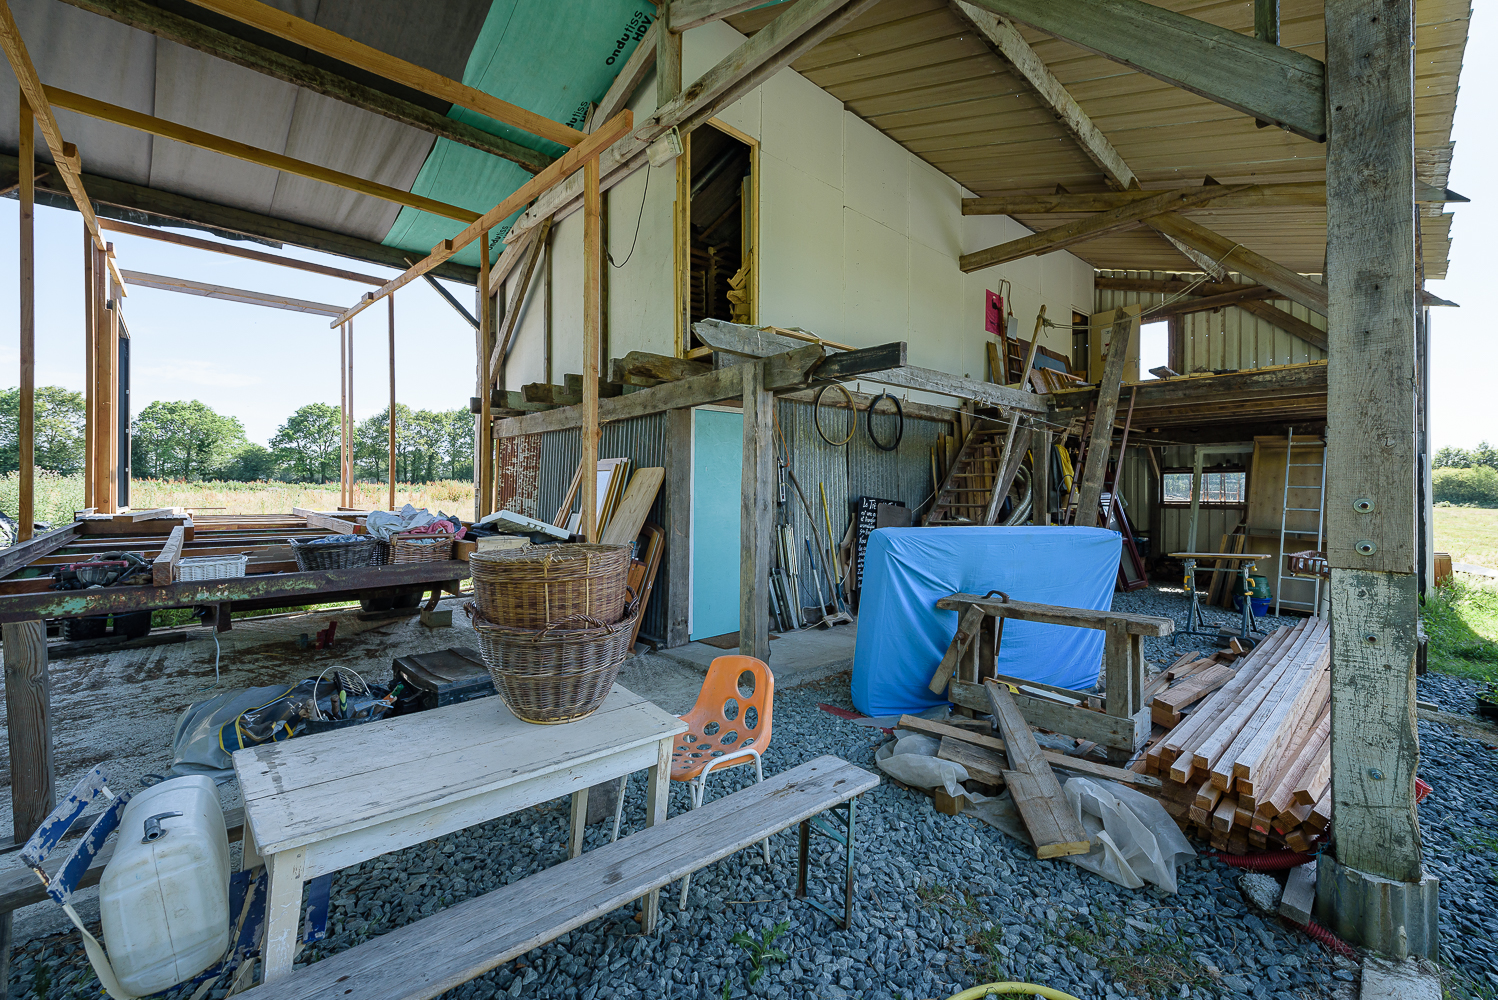 photographe d'architecture ©INTERVALphoto : ZAD NDDL, autoconstruction, inventaire n°5, Notre Dame des Landes(44) ©INTERVAL photo